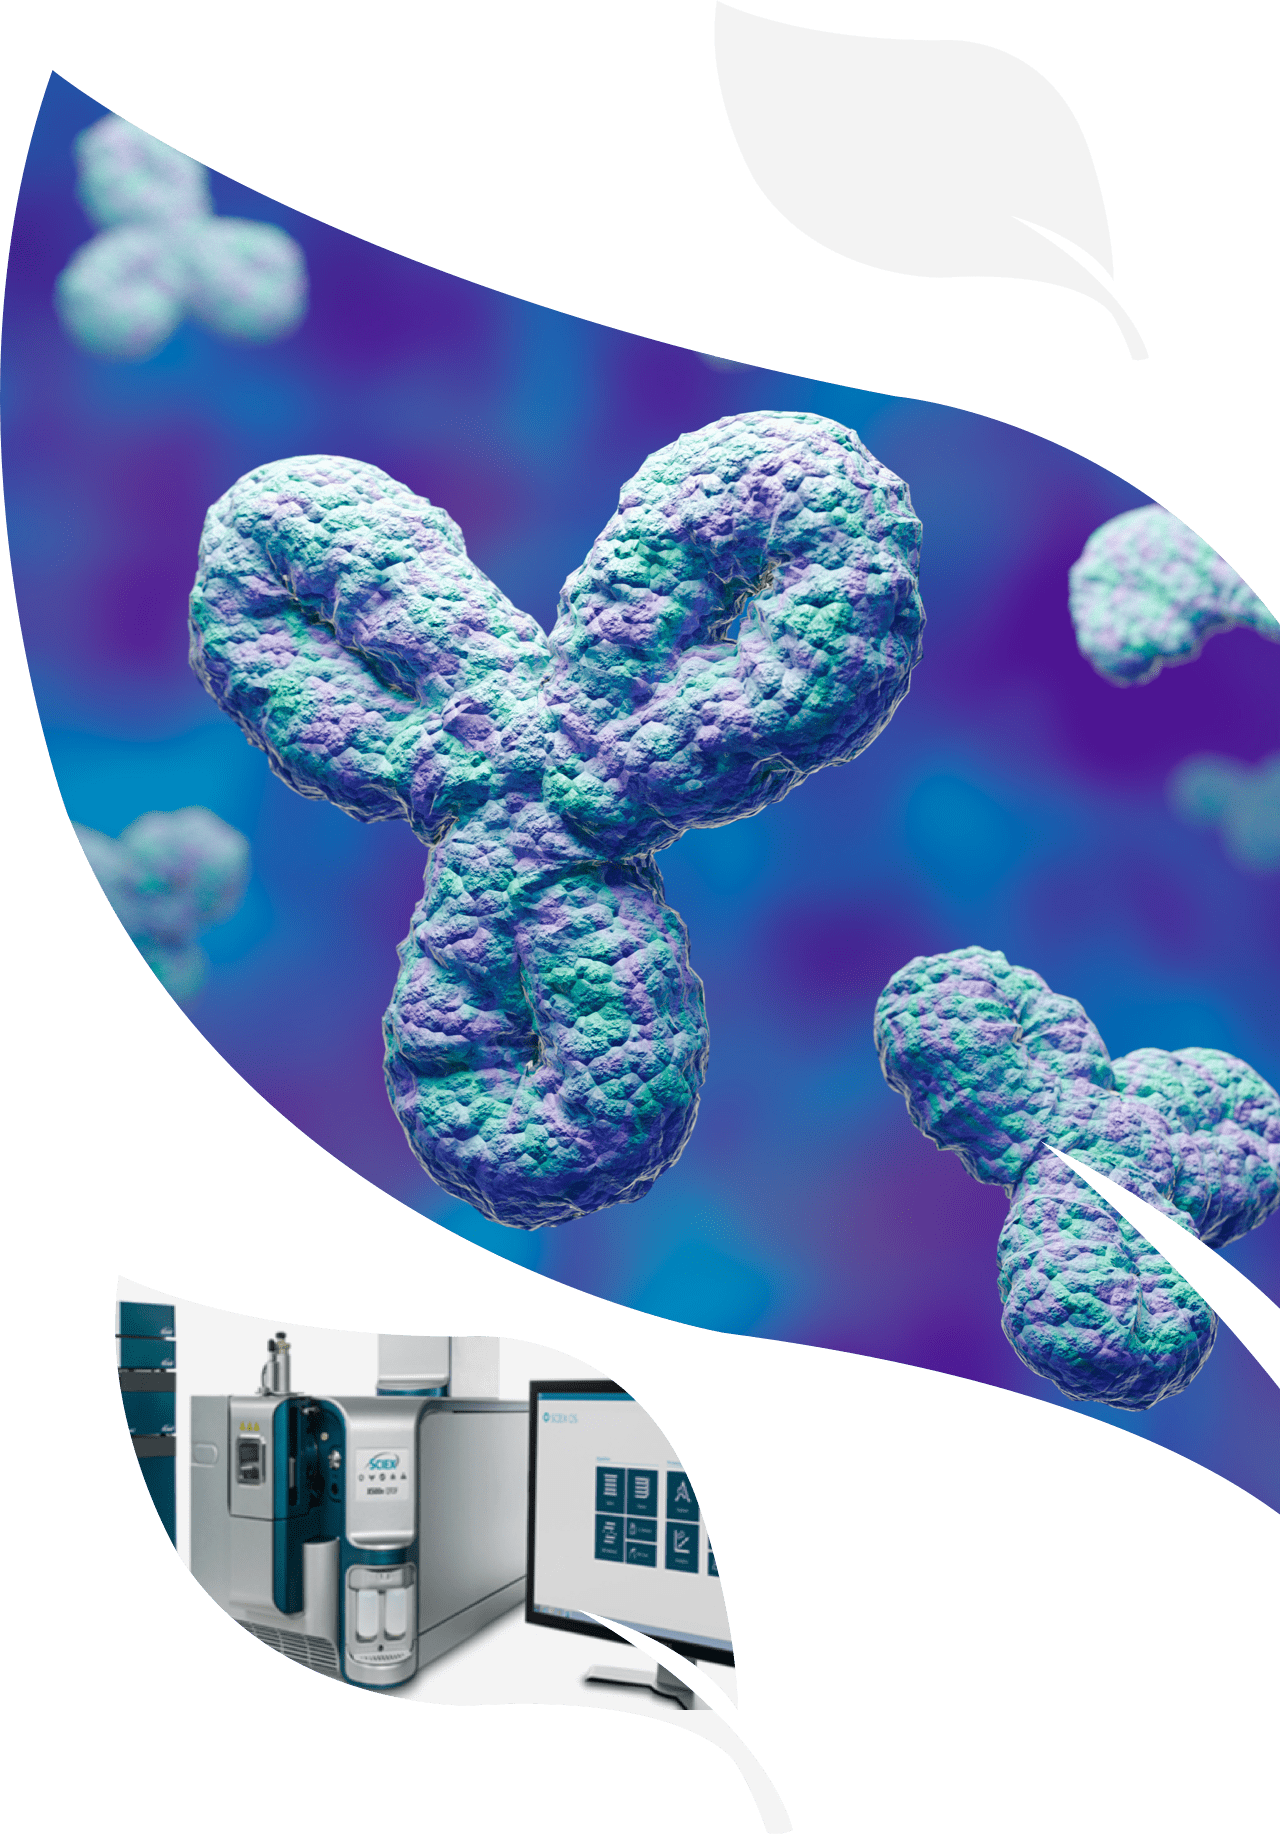 Computer generated image of a molecule and bioanalysis equipment for analysis and characterization services by iBio.